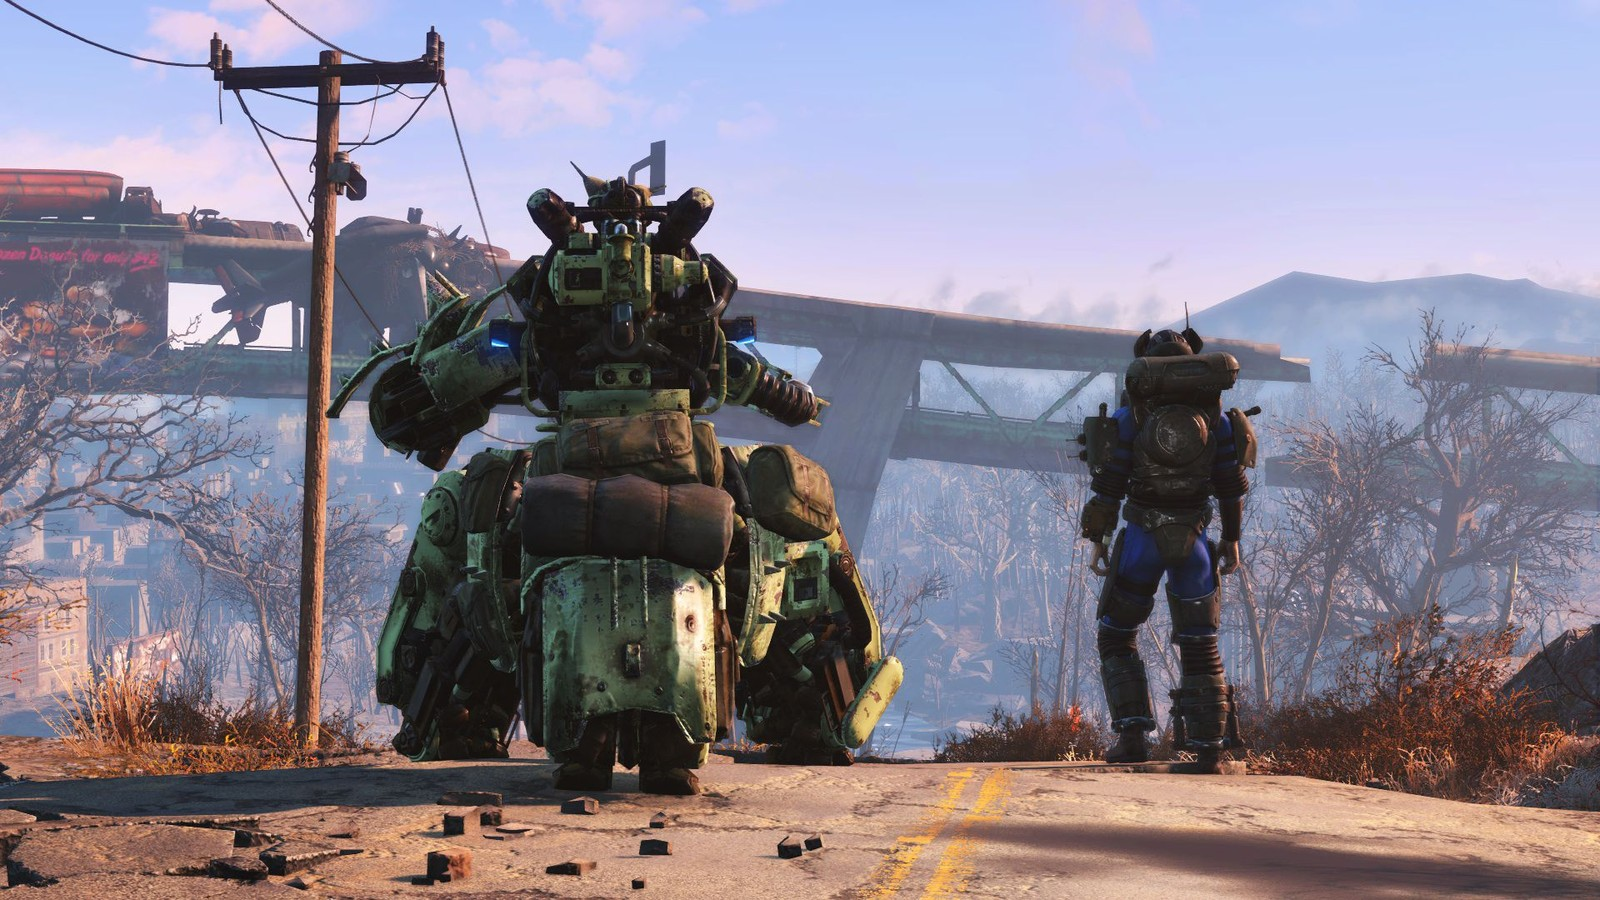 Exploring Fallout 4's wasteland with the Wizdish ROVR treadmill